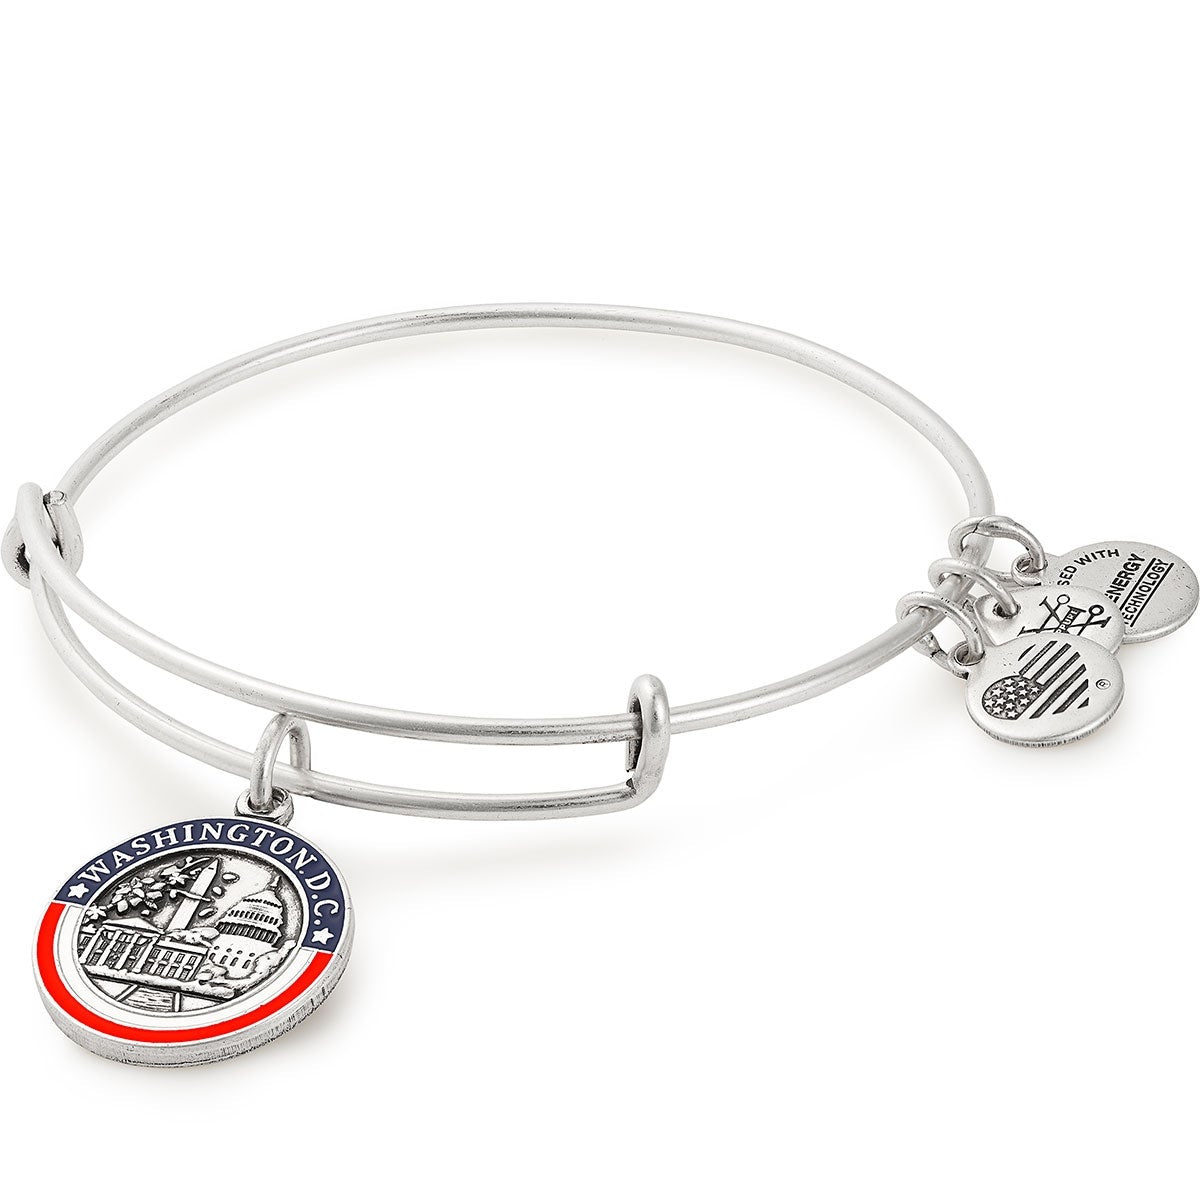 Details about  /Disney Cinderella Believe in Every Wish Gold Alex and Ani Bracelet